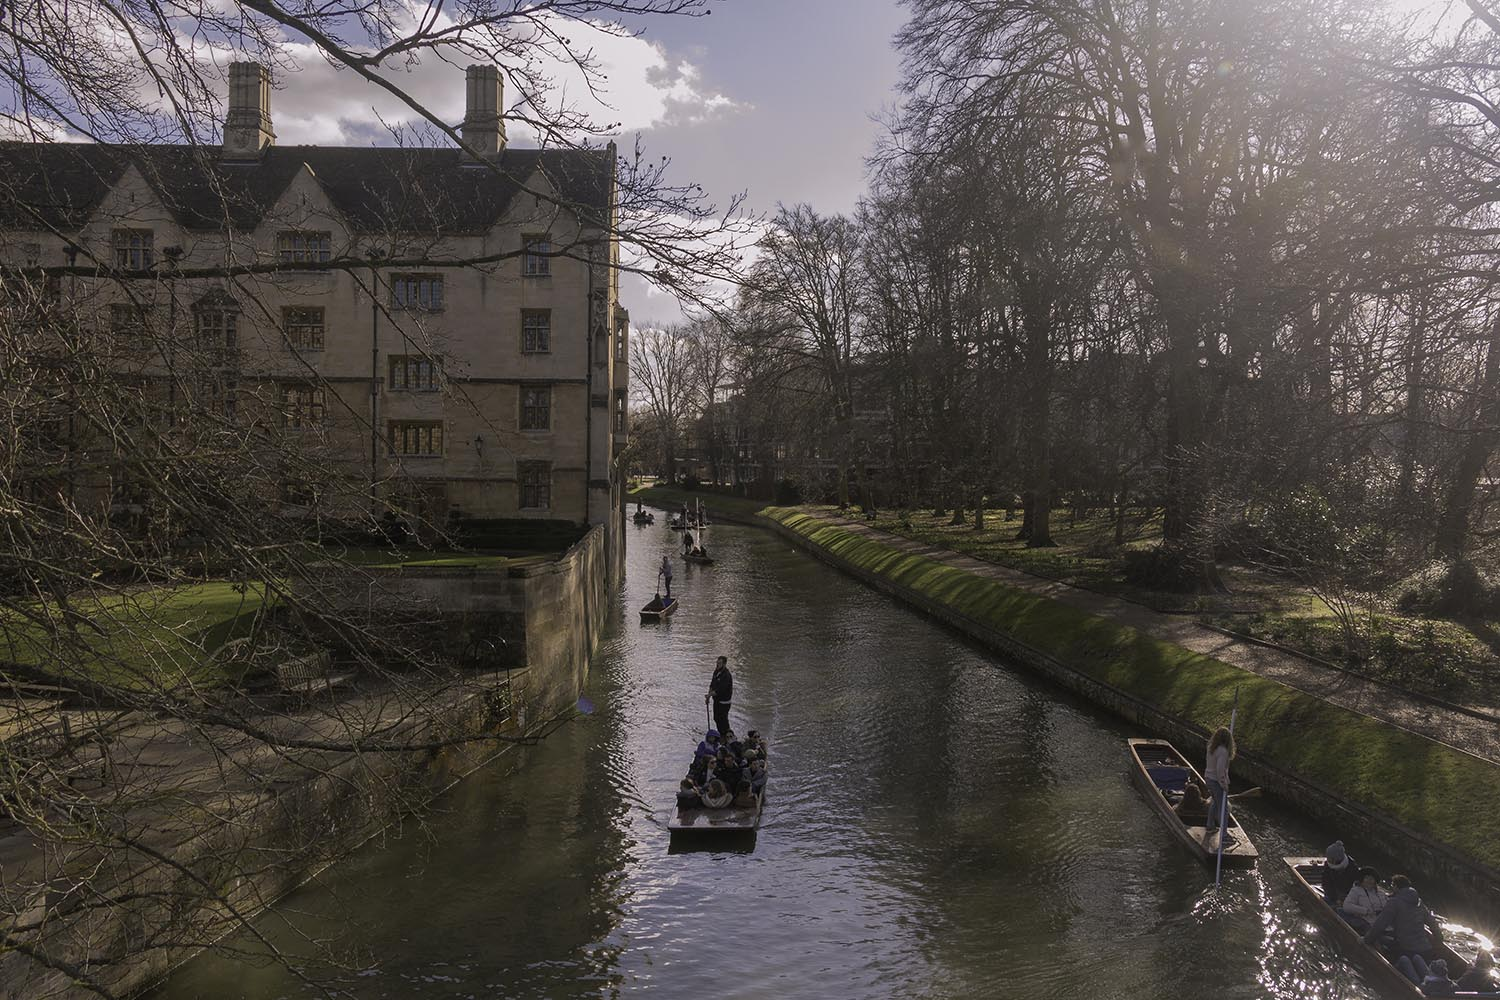 cam-river-cambridge.jpg